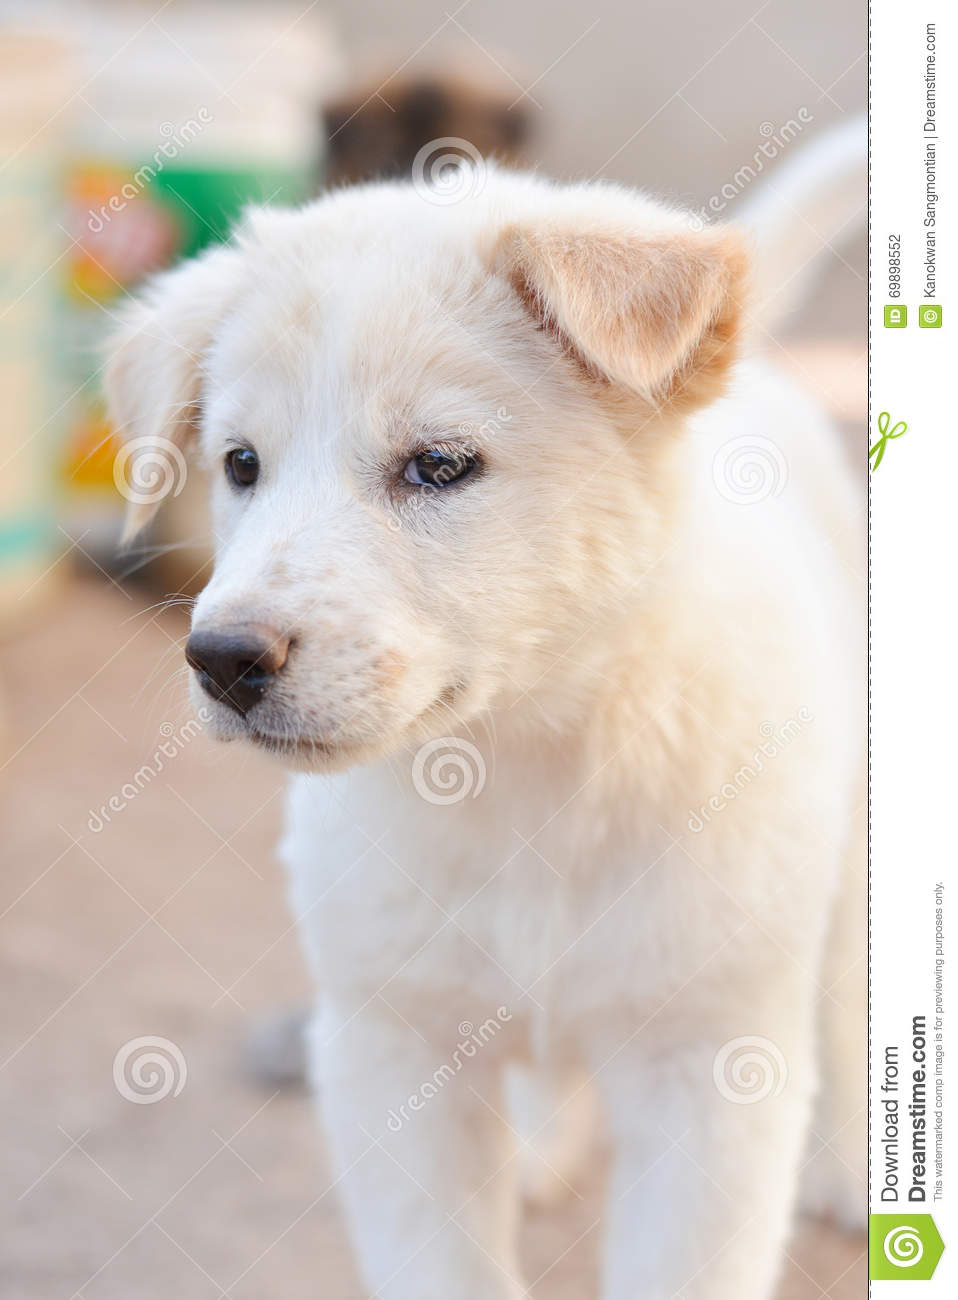 Baby Dog White And Cute Stock Photo Image Of Adorable 69898552